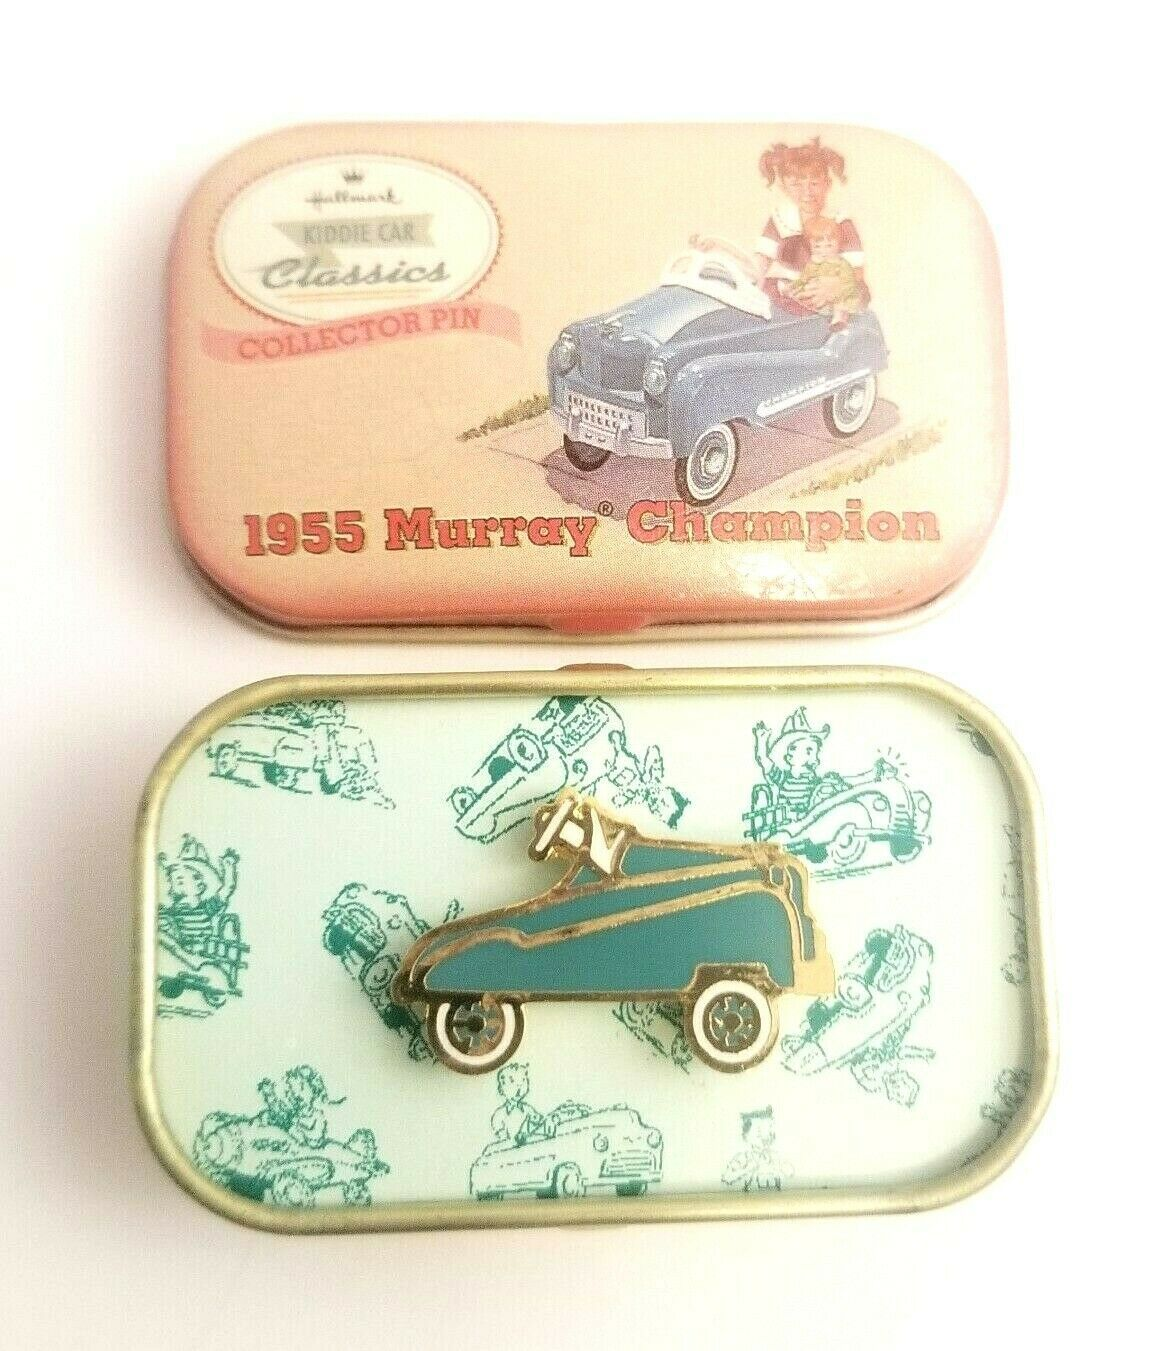 Primary image for 1999 HMK Hallmark Kiddie Car Classics Collector's Pin 1955 Murray Champion W Box